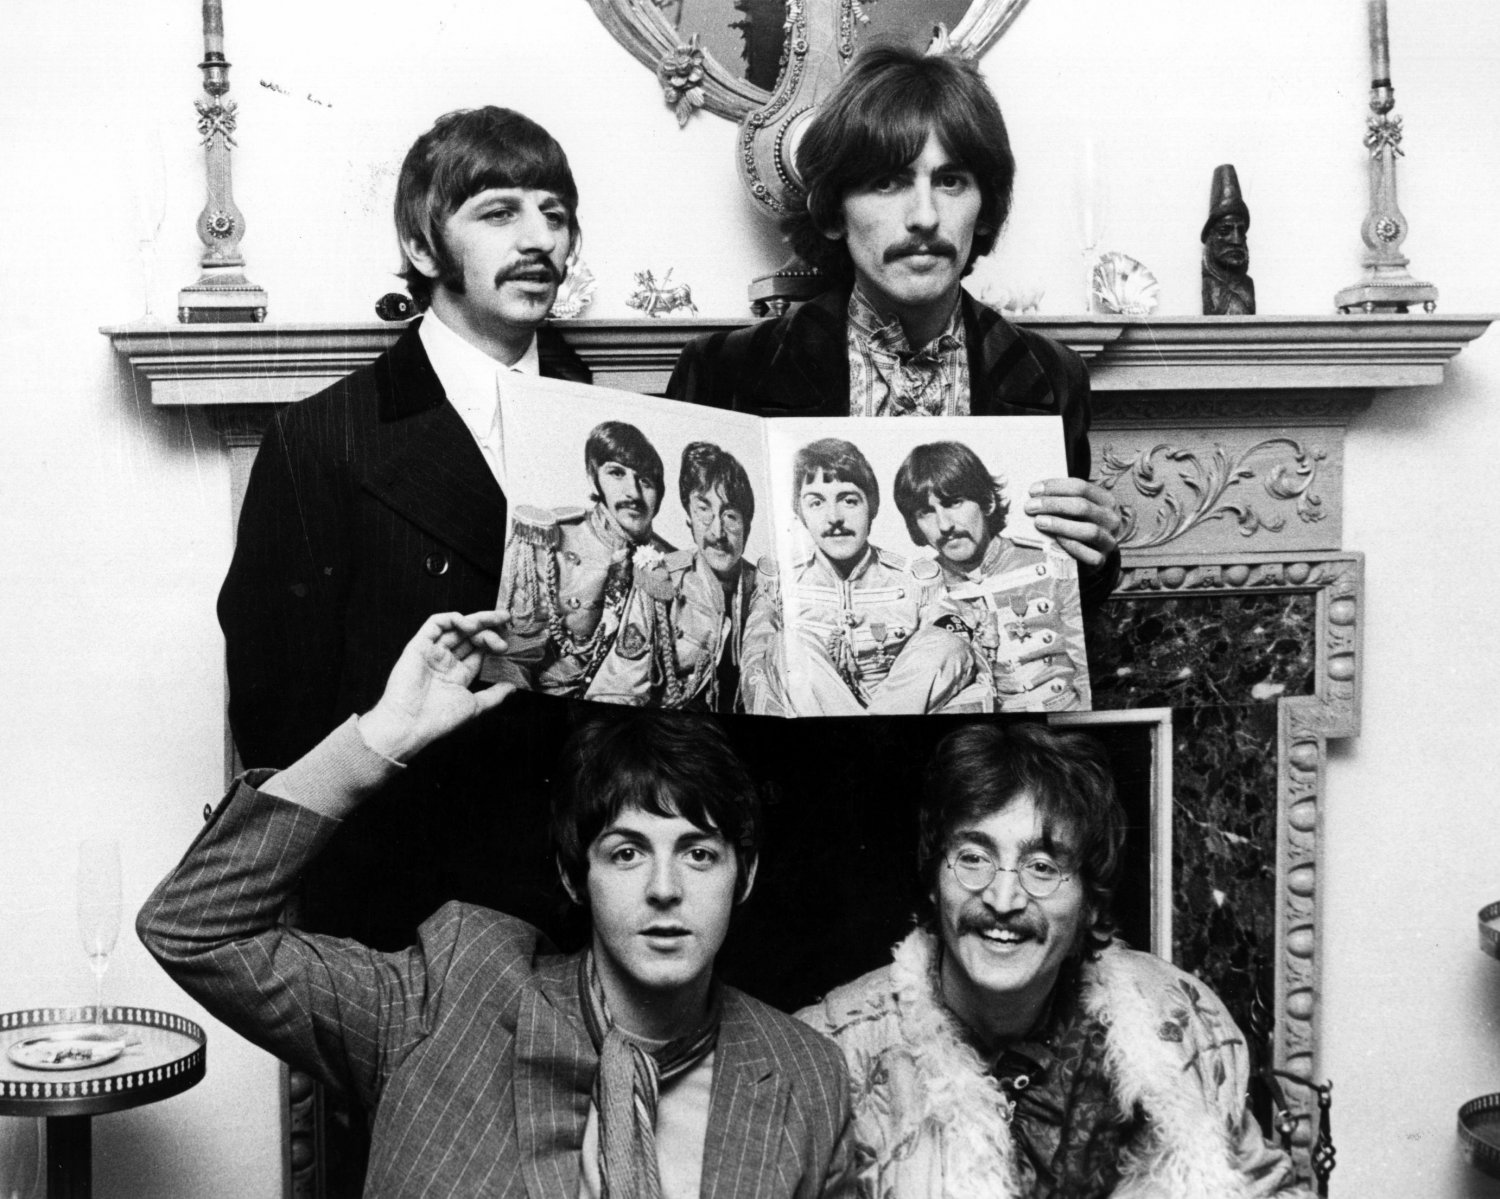 THE BEATLES POSE WITH SGT. PEPPER ALBUM COVER - 8X10 PHOTO (ZZ-050)